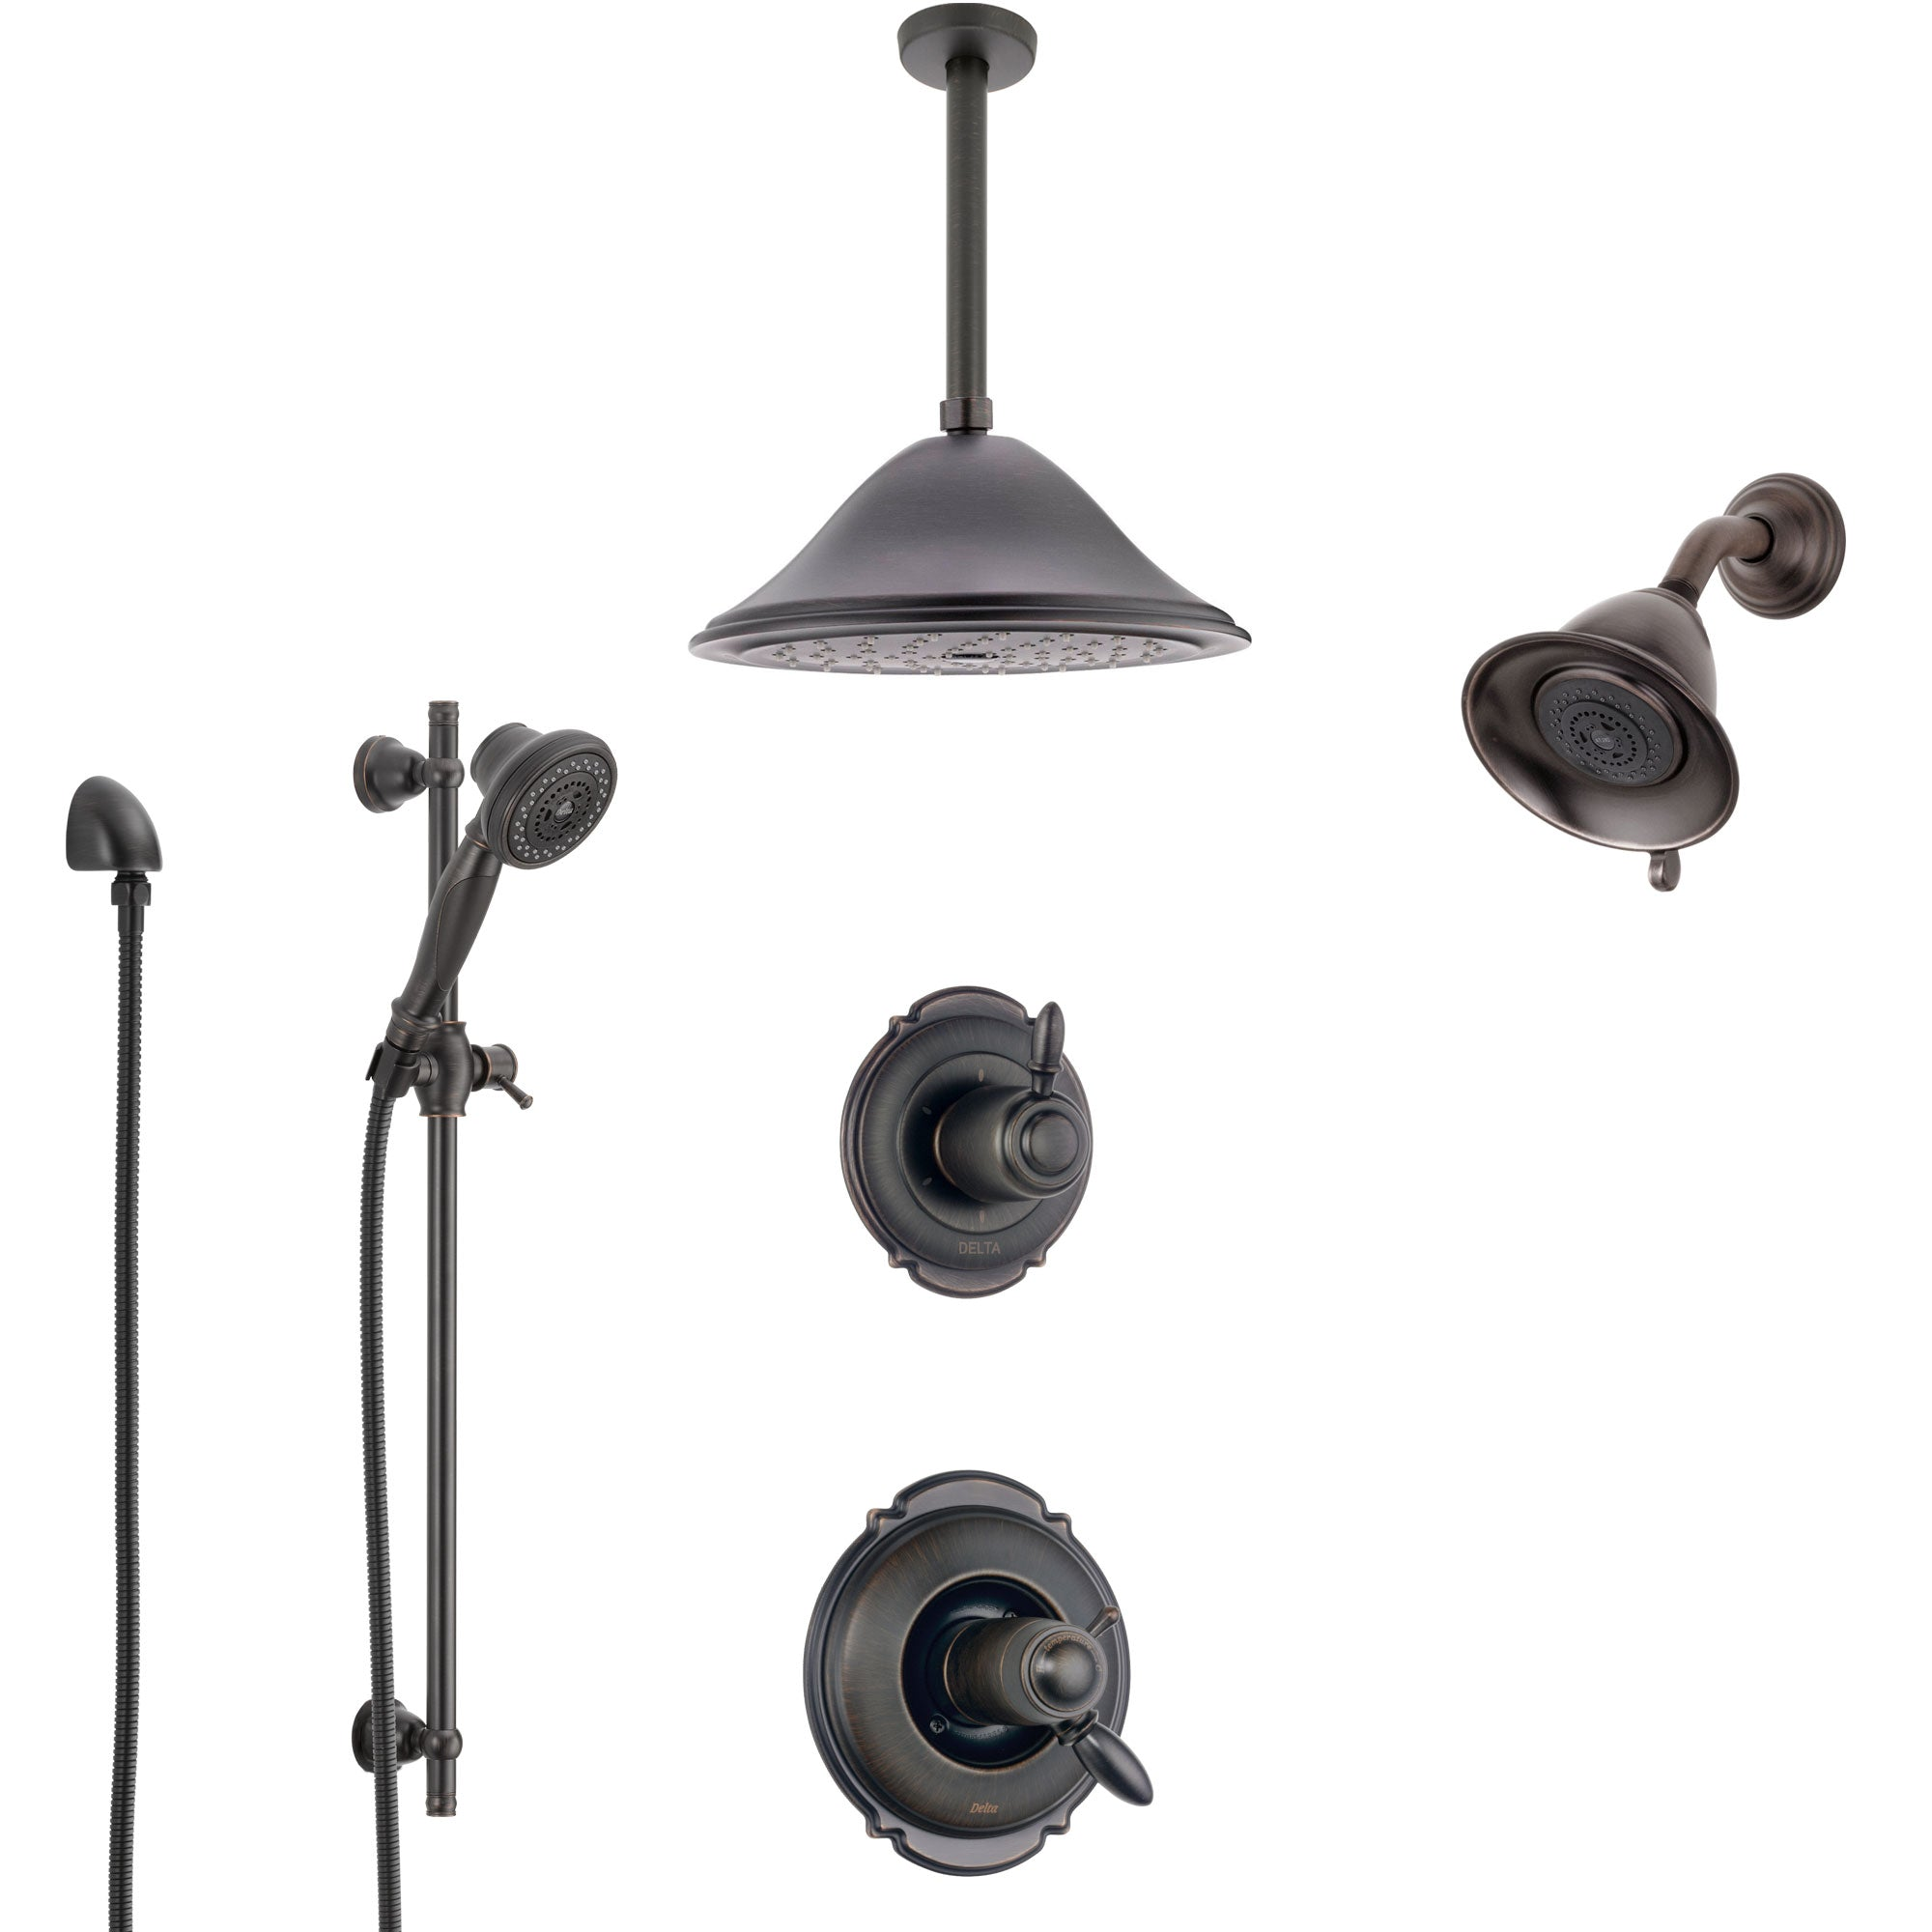 Delta Victorian Venetian Bronze Shower System with Dual Thermostatic Control, Diverter, Showerhead, Ceiling Showerhead, and Hand Shower SS17T2552RB6